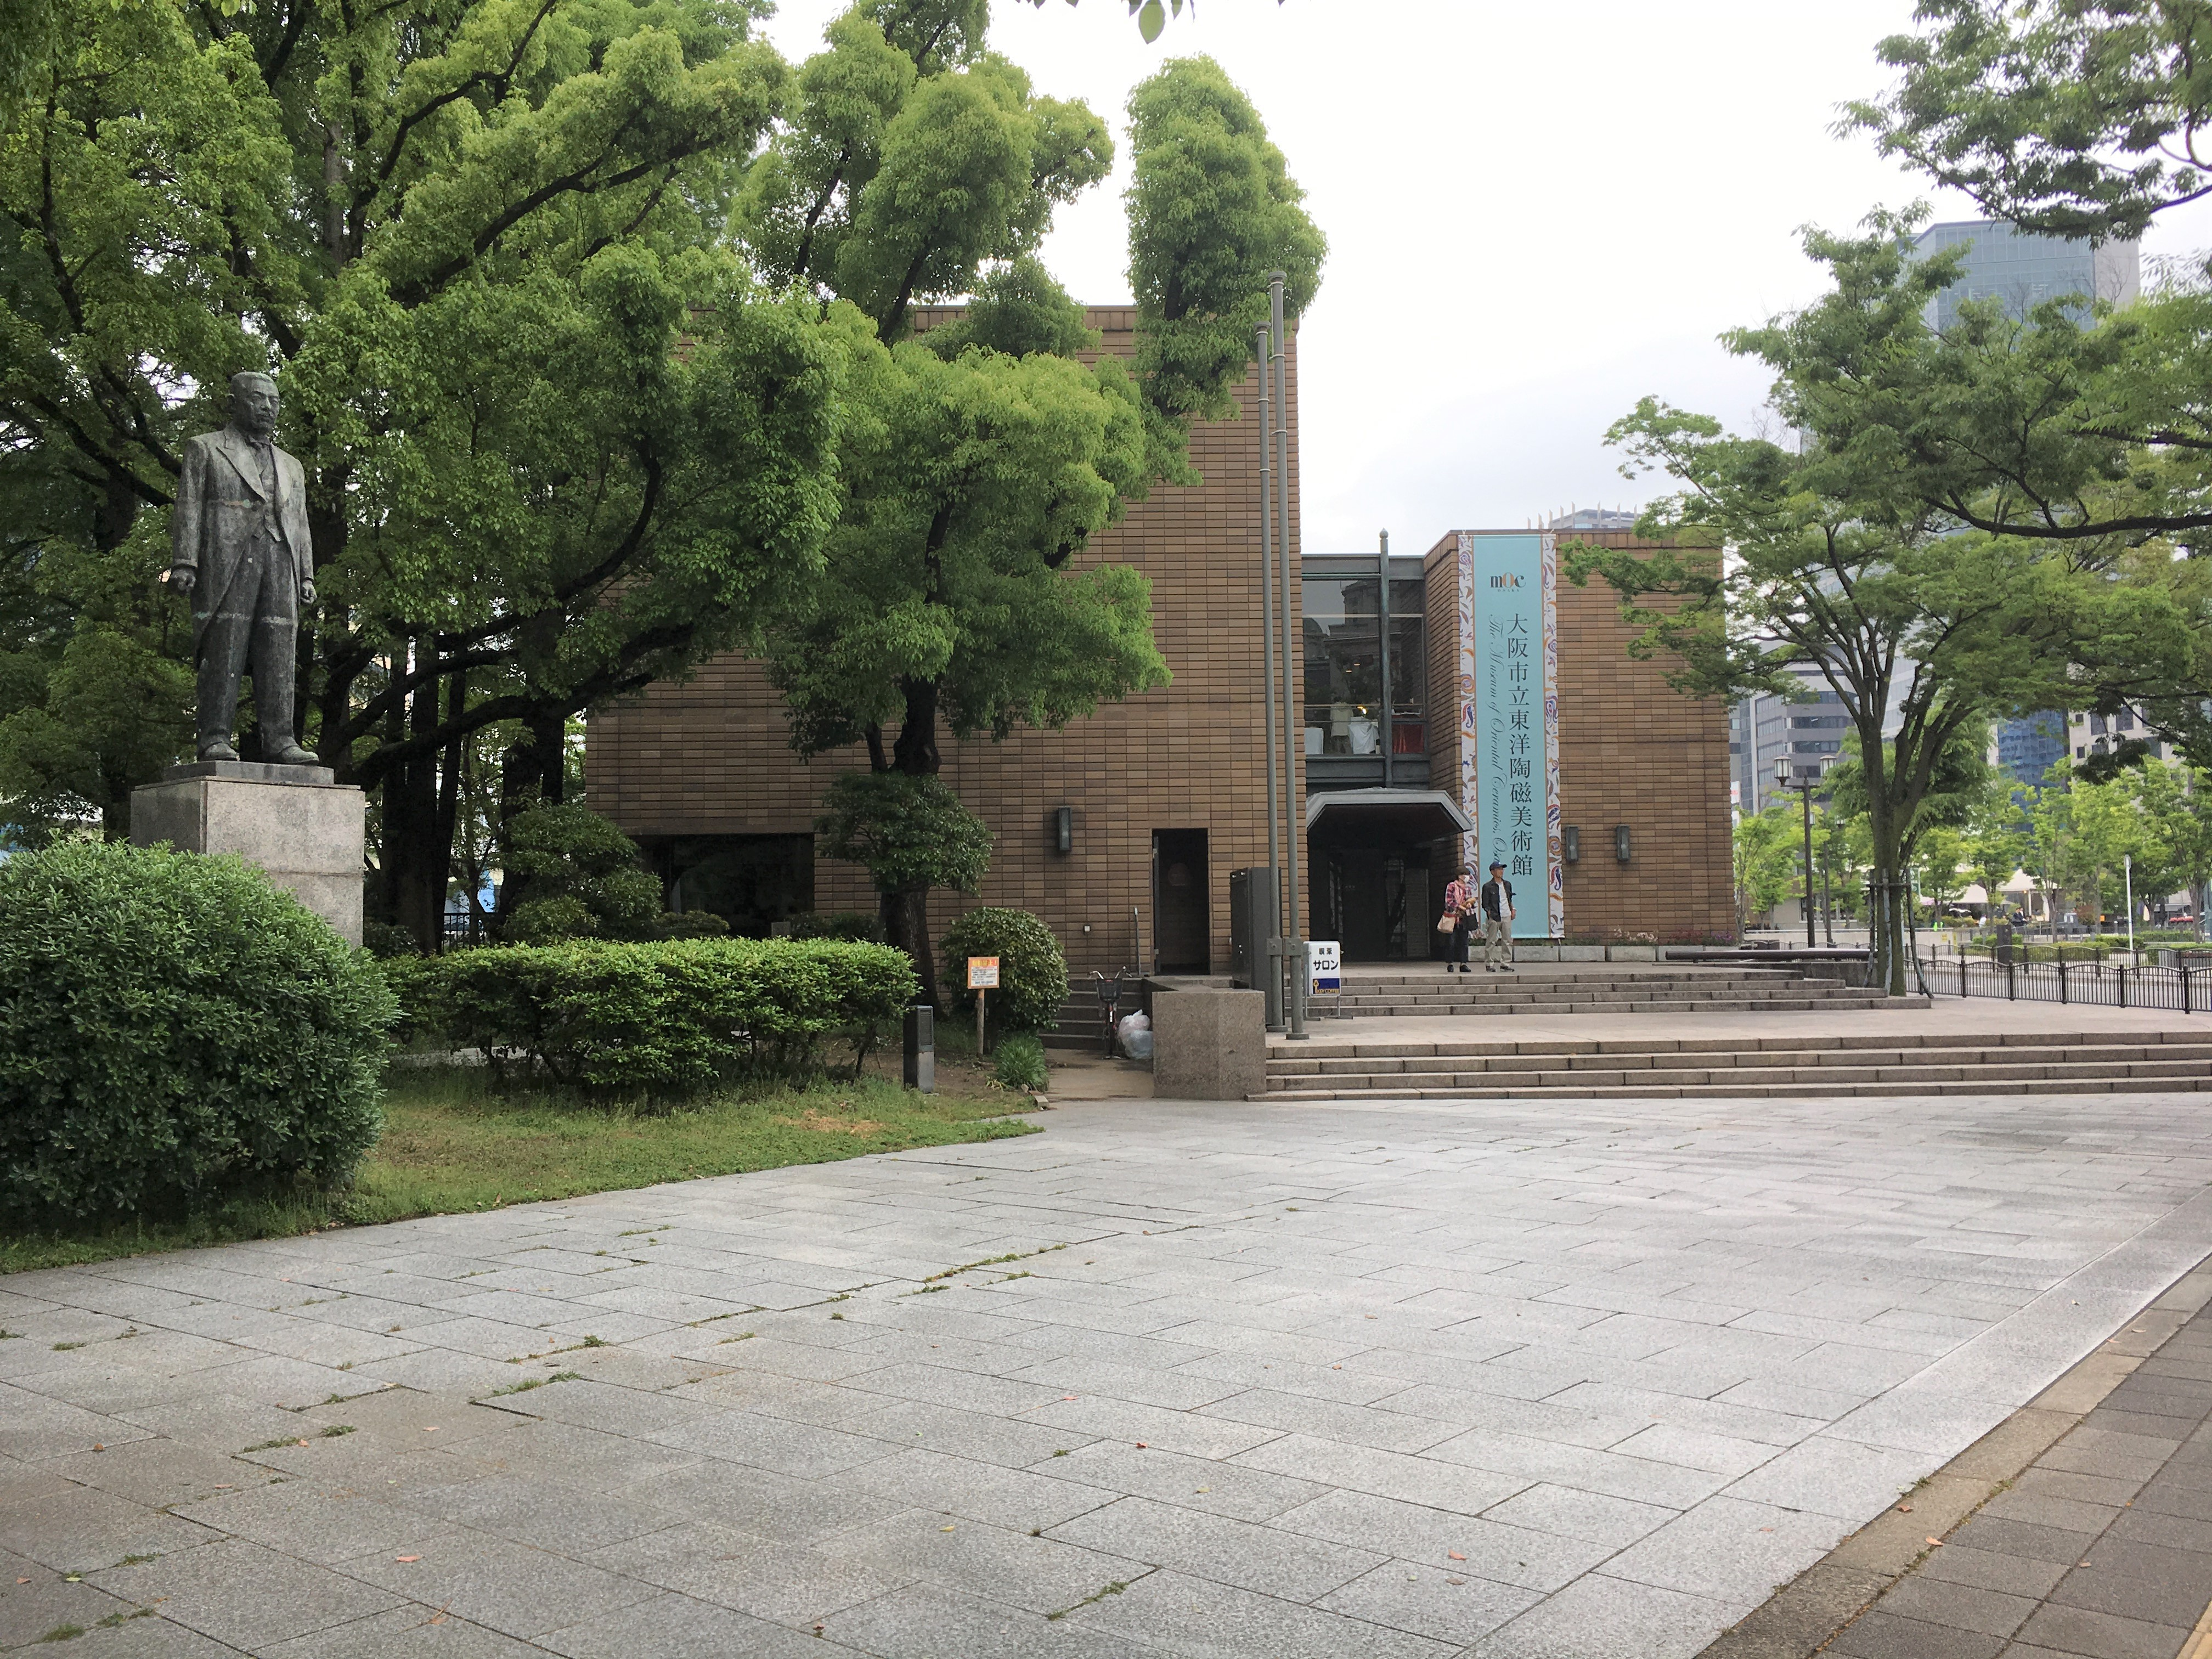 Entrance of the Osaka museum of oriental ceramics